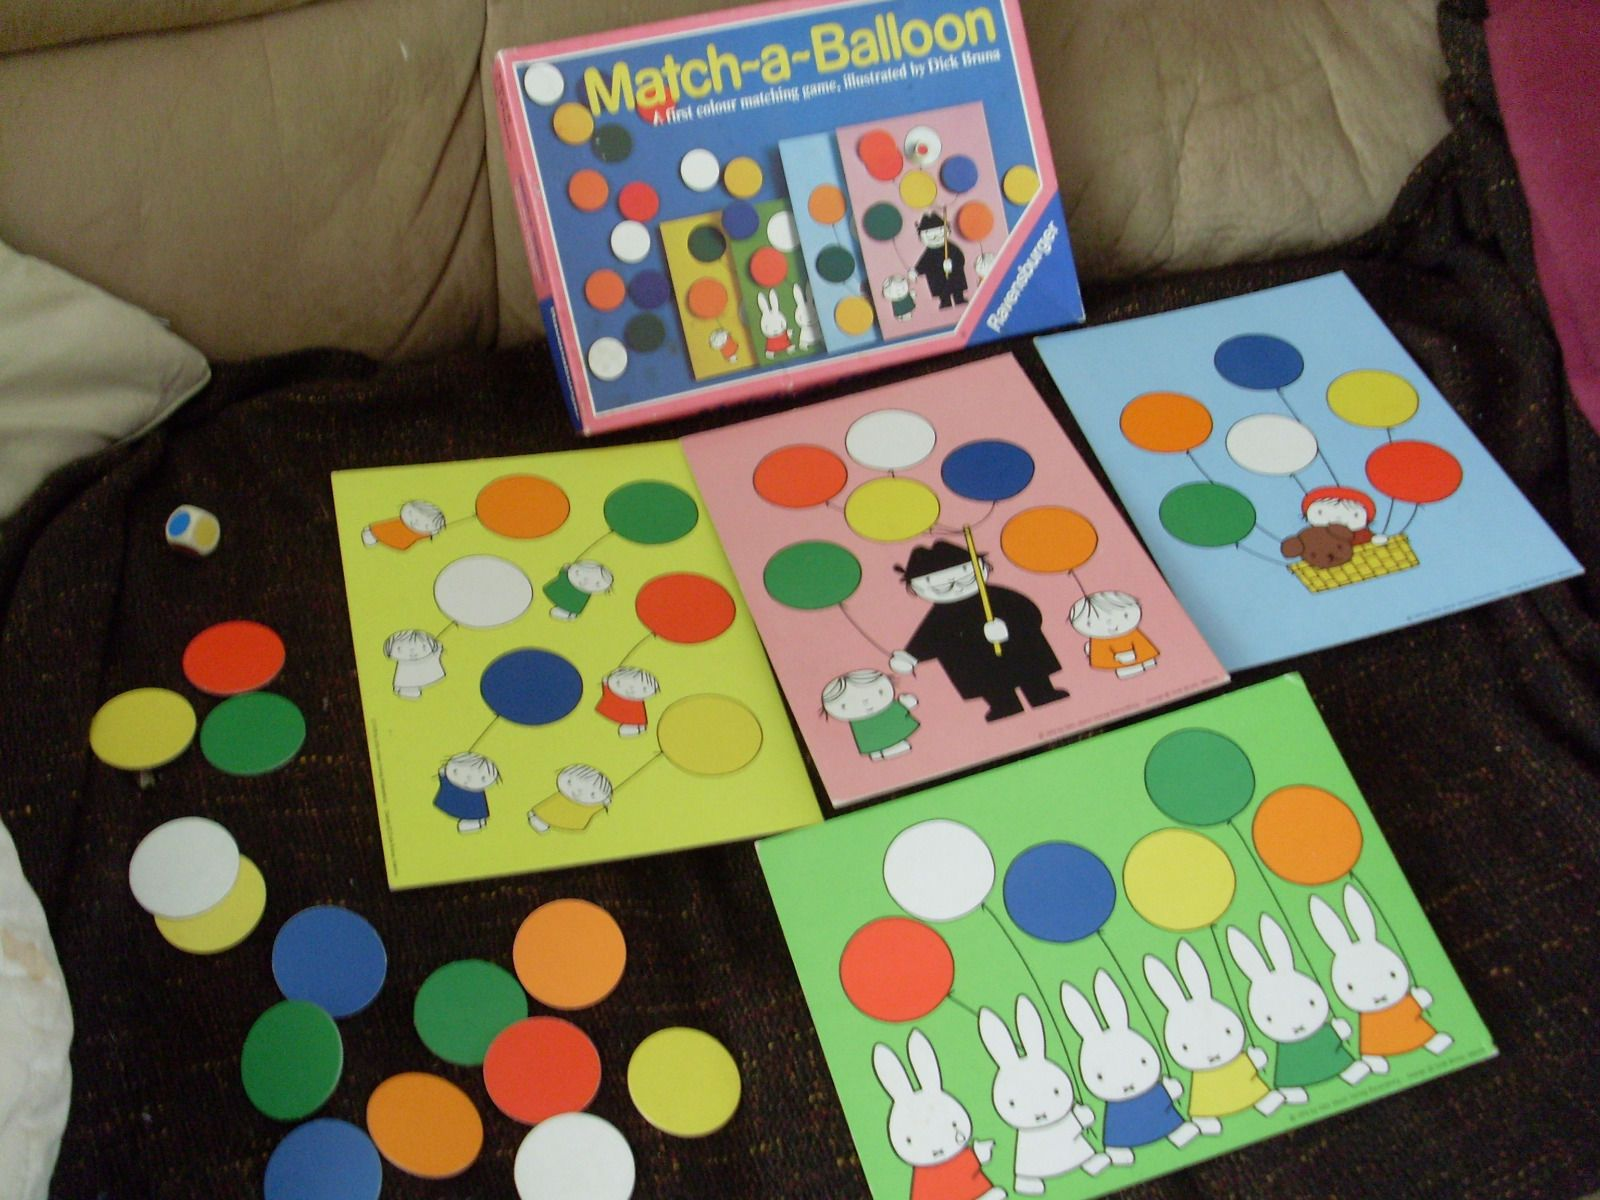 Match-a-Balloon vintage board game, by Ravensburger | eBay